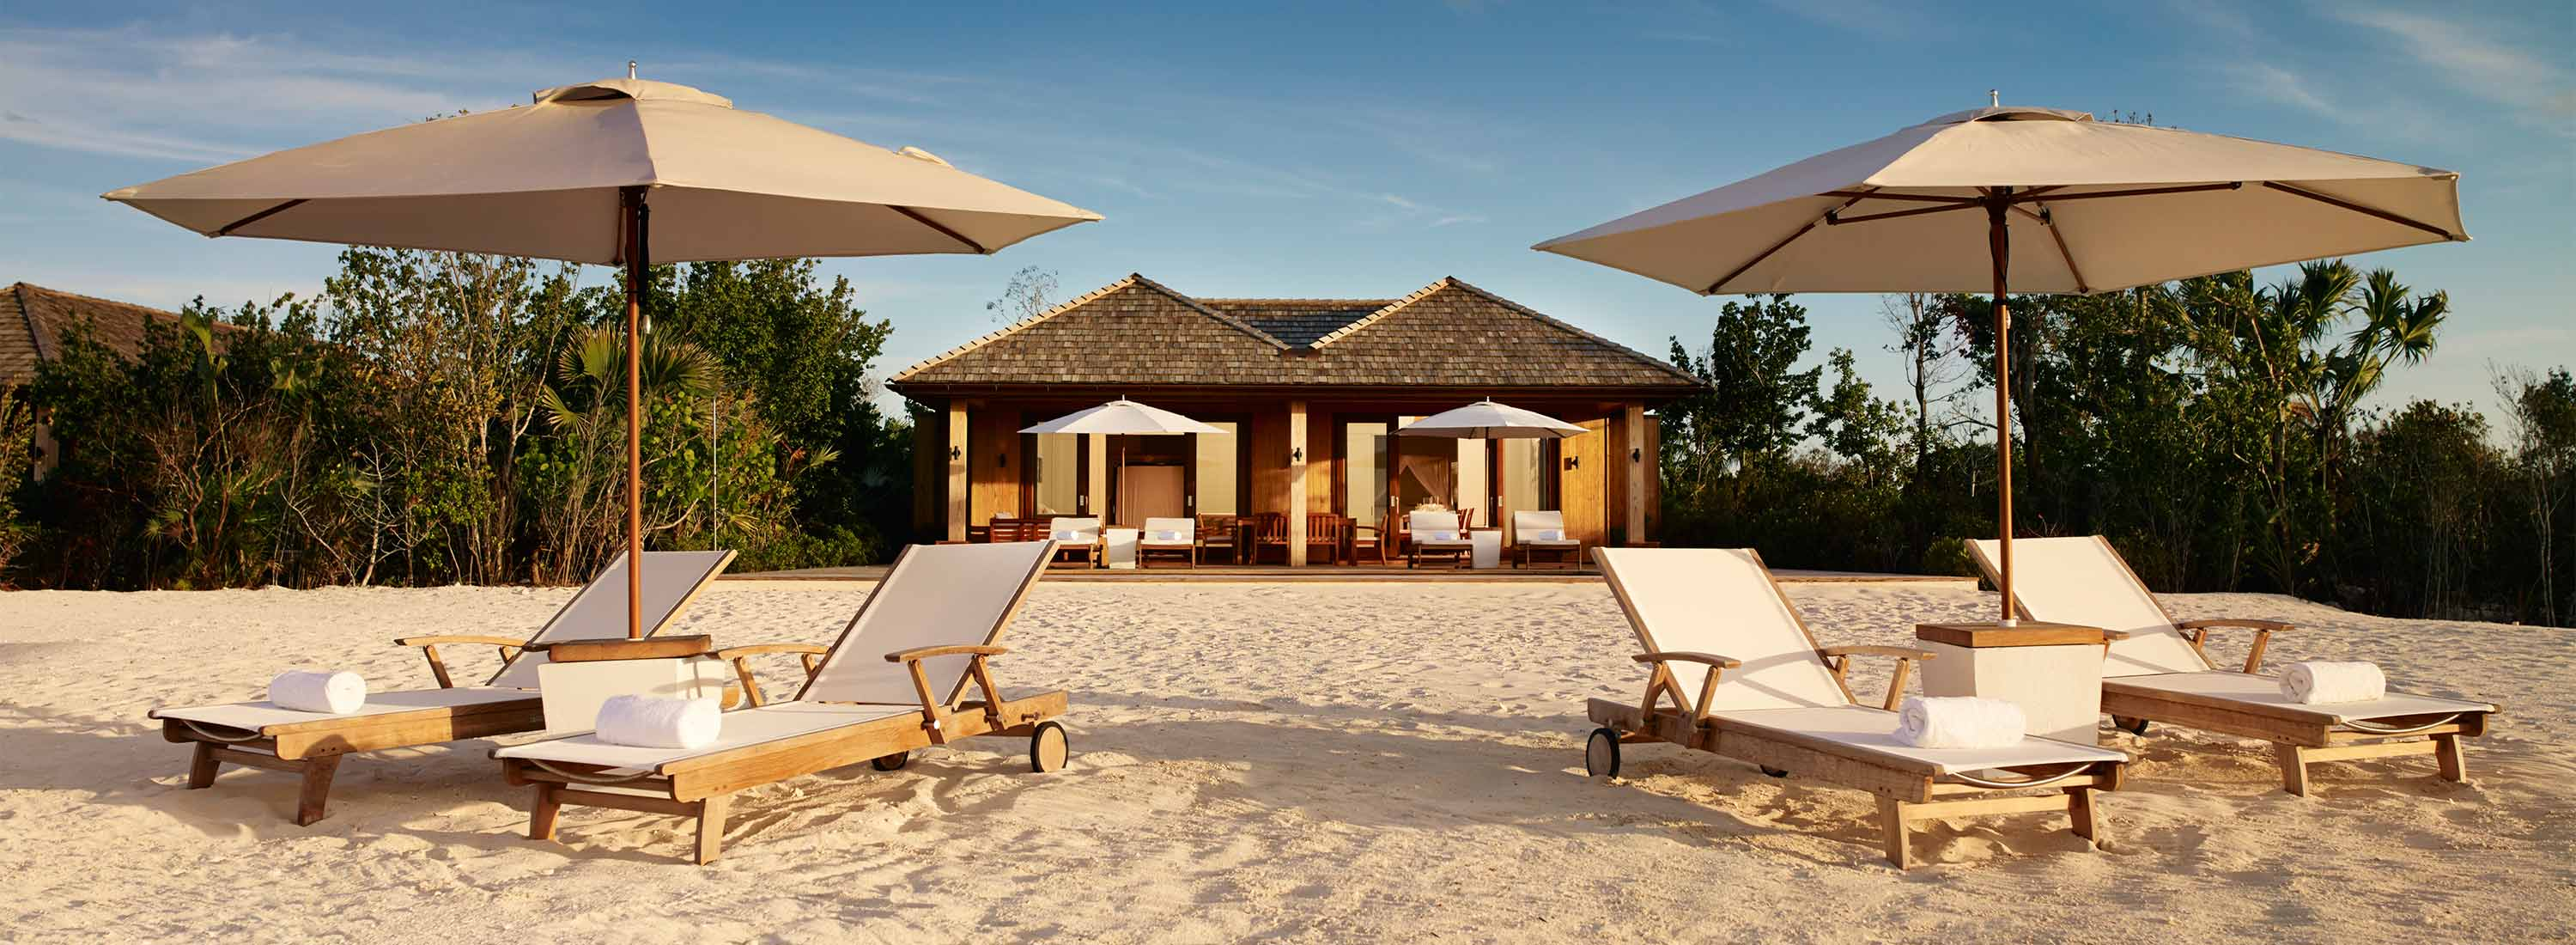 Parrot Bay by Como beachfront luxury resort in Turks and Caicos Islands